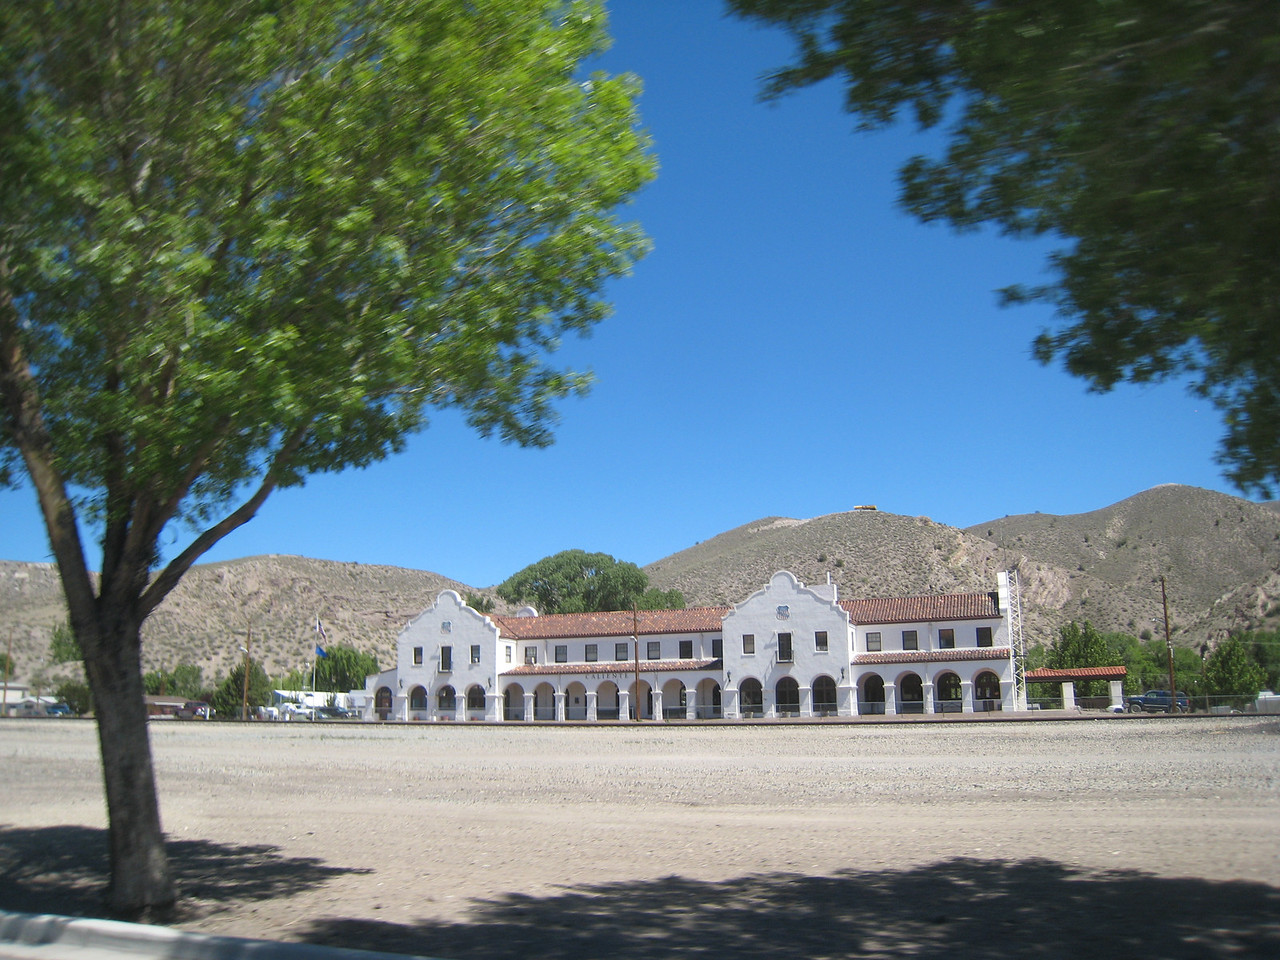 Caliente is a railroad town, and the old depot shows how important rail service used to be here.